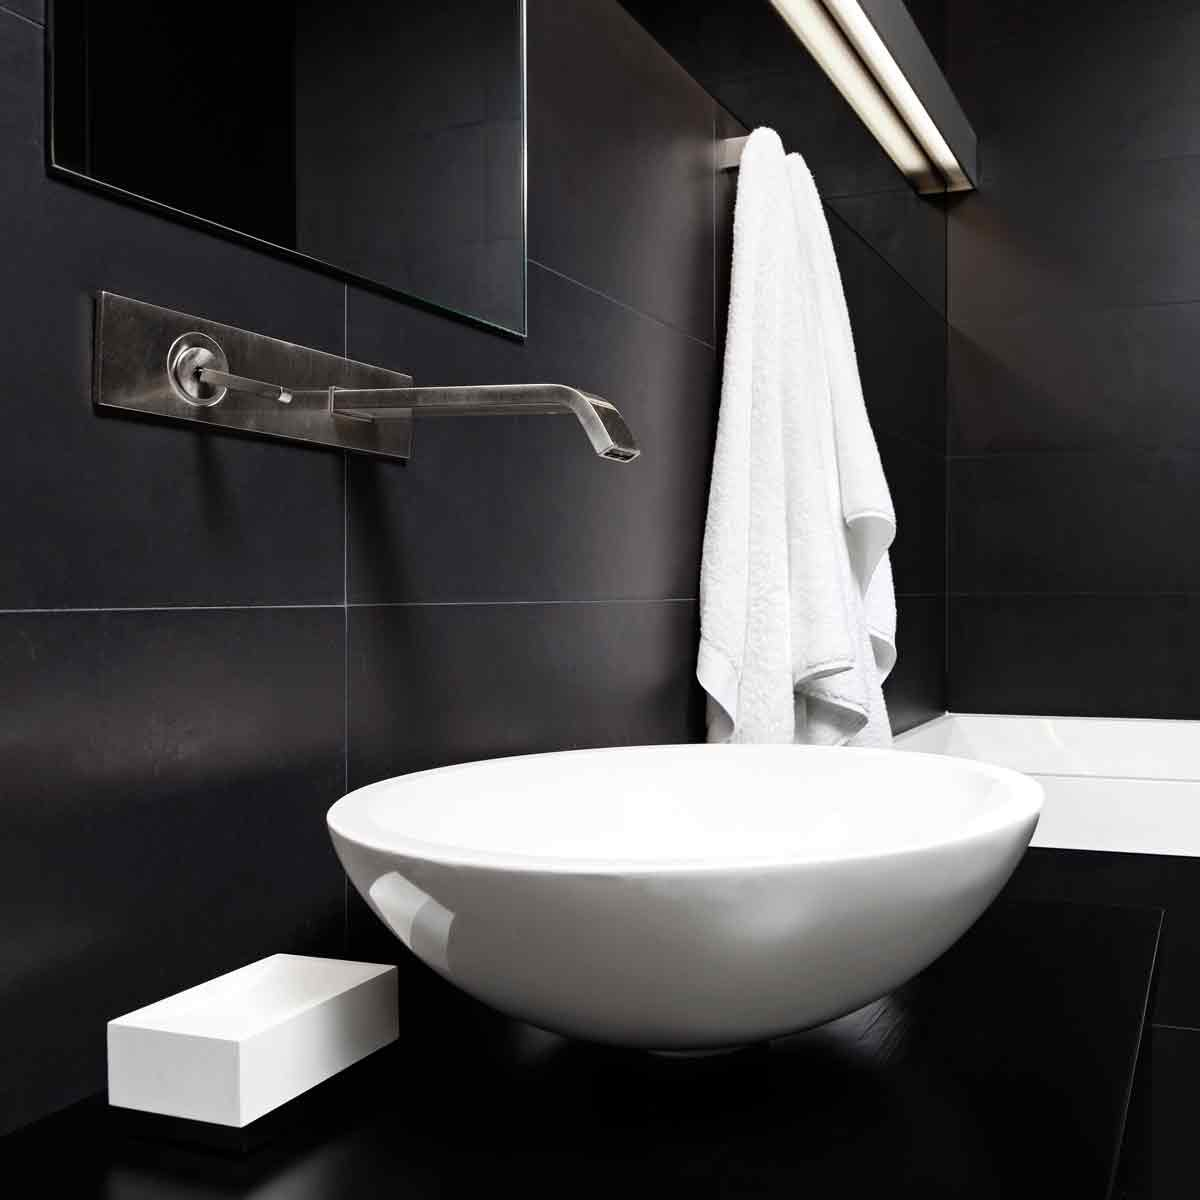 Modern-minimalism-style-bathroom-interior-in-black-and-white-tones